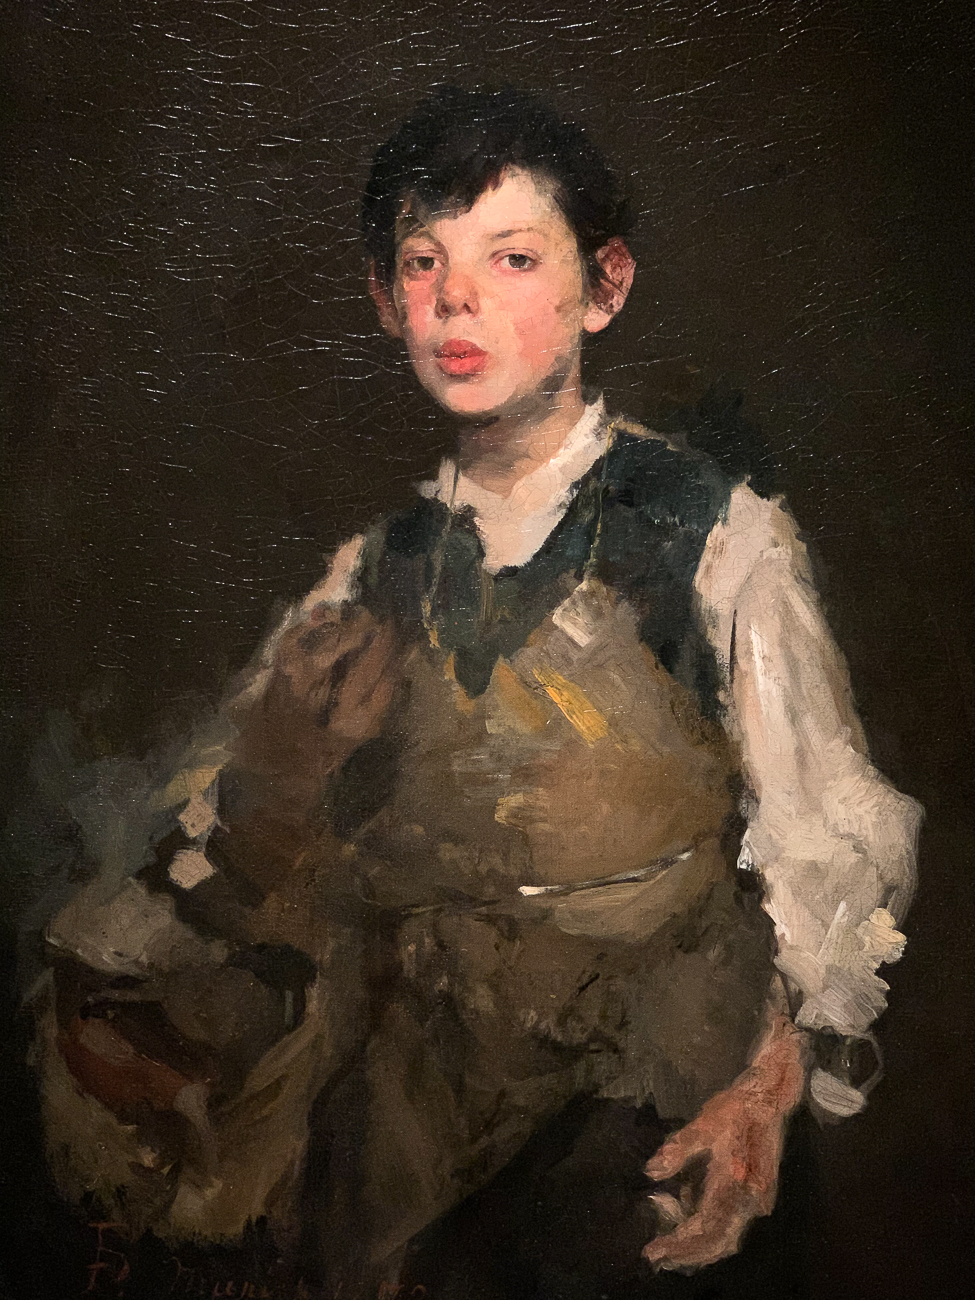 The Whistling Boy is one of the more well-known Duveneck works. / Image: Phil Armstrong, Cincinnati Refined // Published: 12.19.20